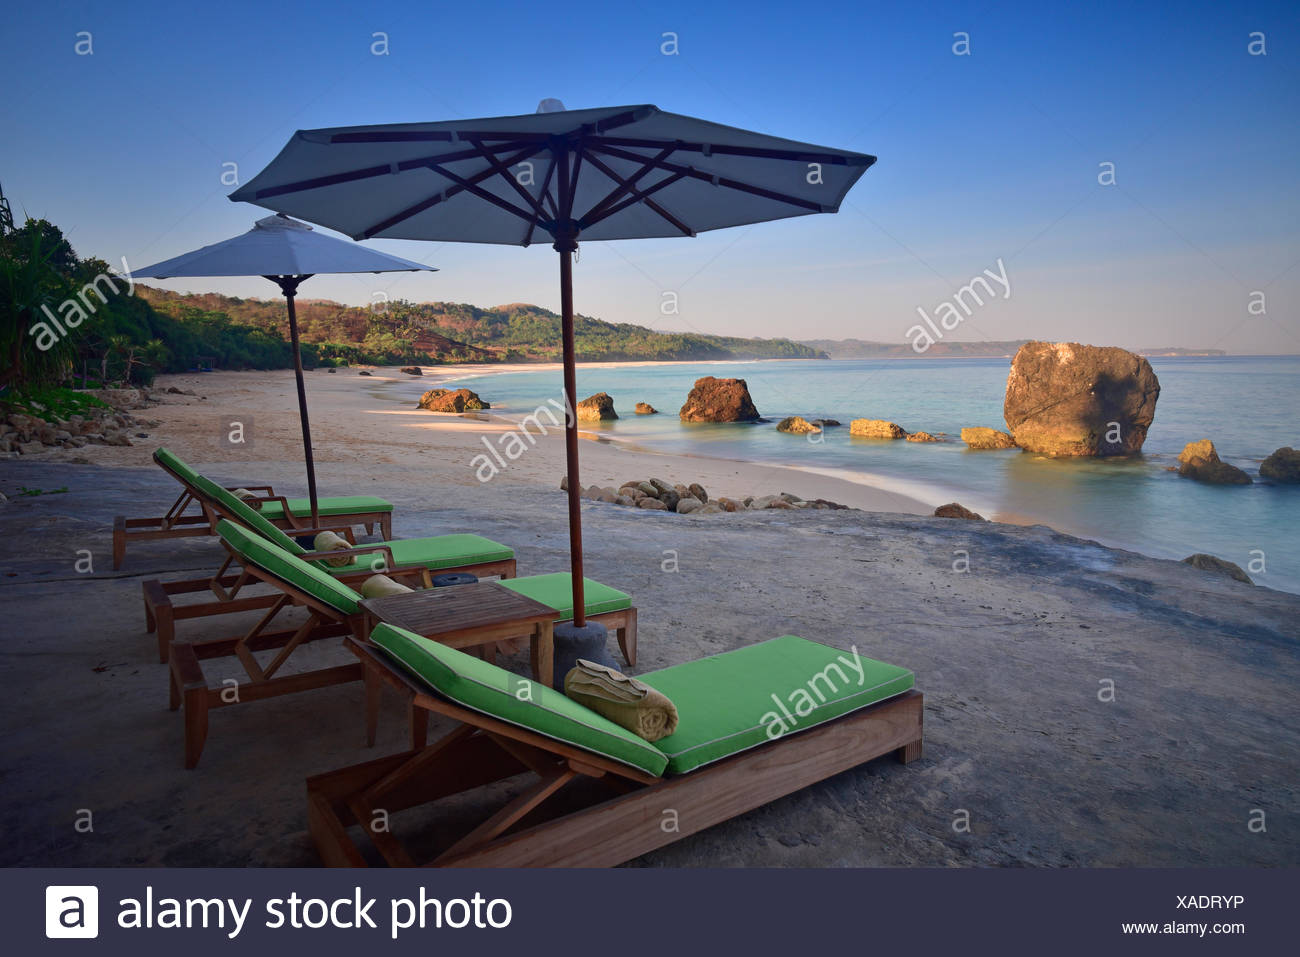 Sun loungers and parasols on beach in morning, West Sumba, Indonesia - Stock Image